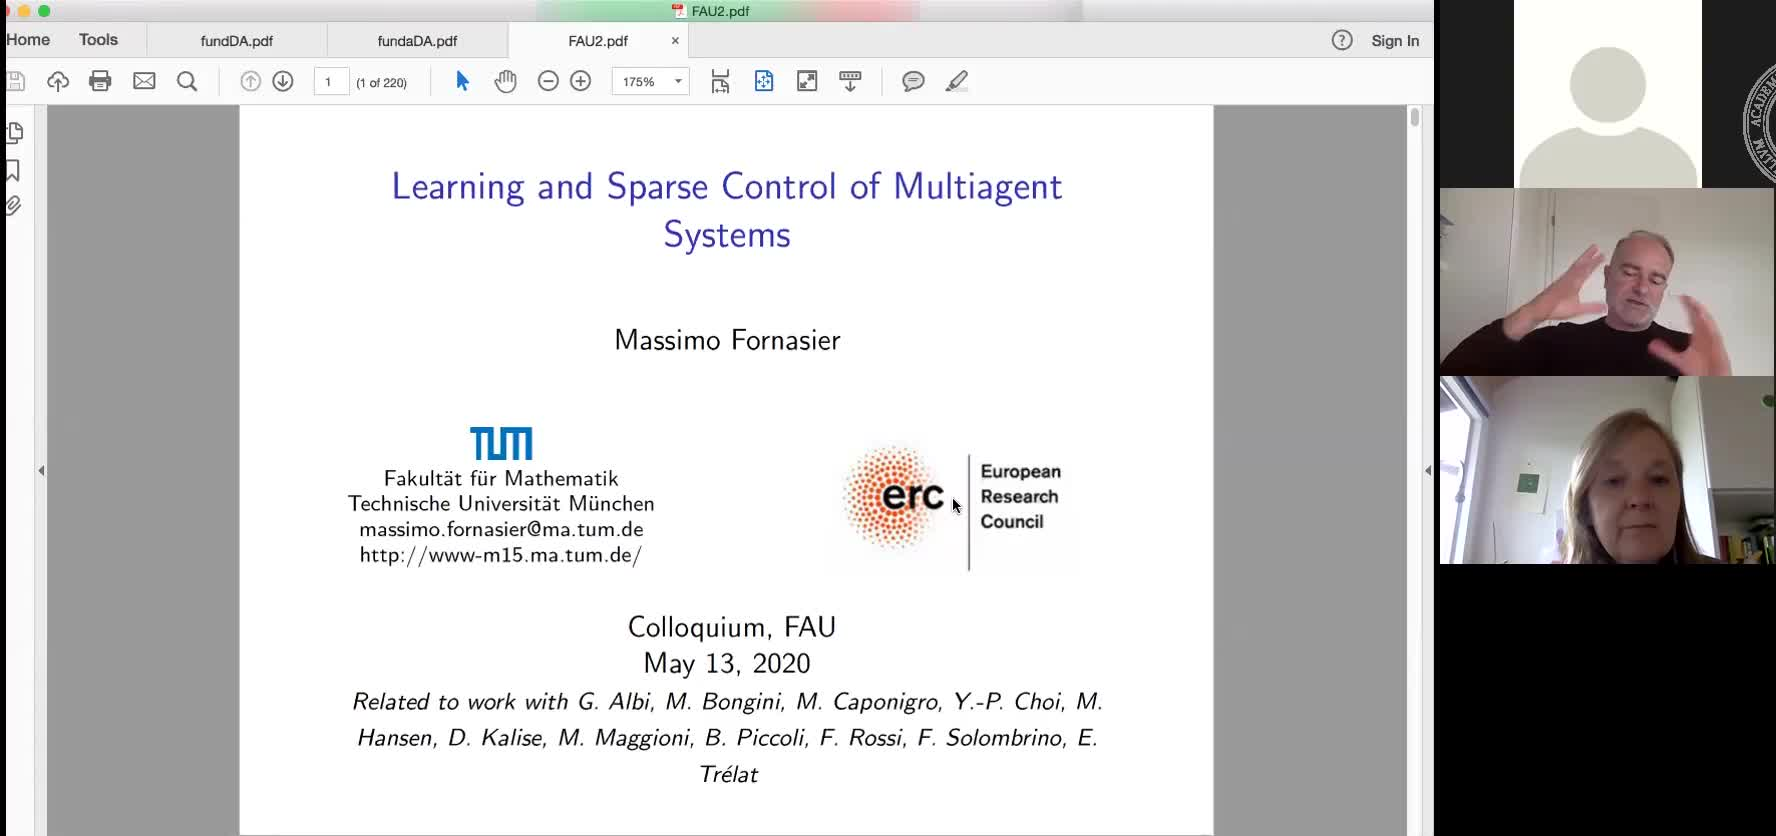 Learning and Sparse Control of Multiagent Systems preview image